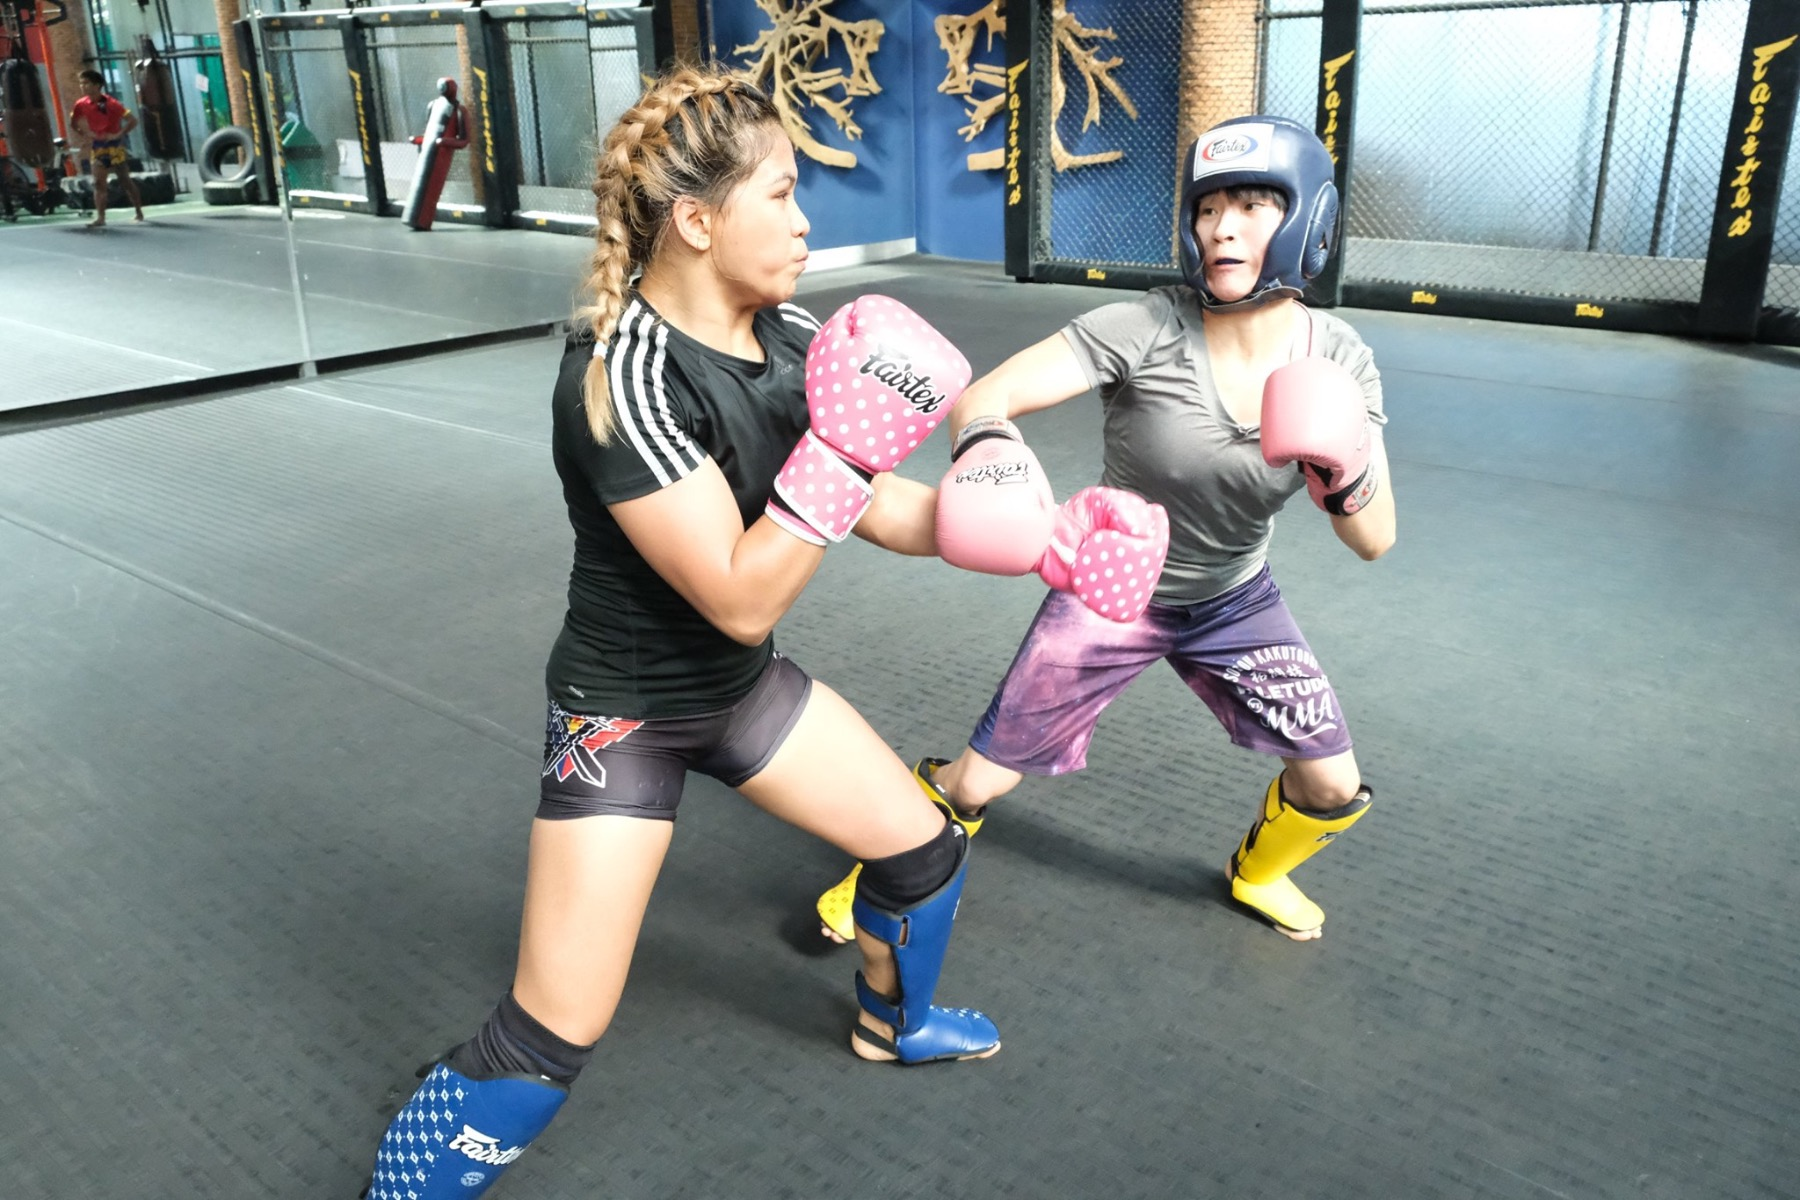 MMA Program at Fairtex with Denice Zamboanga and Jenny Huang